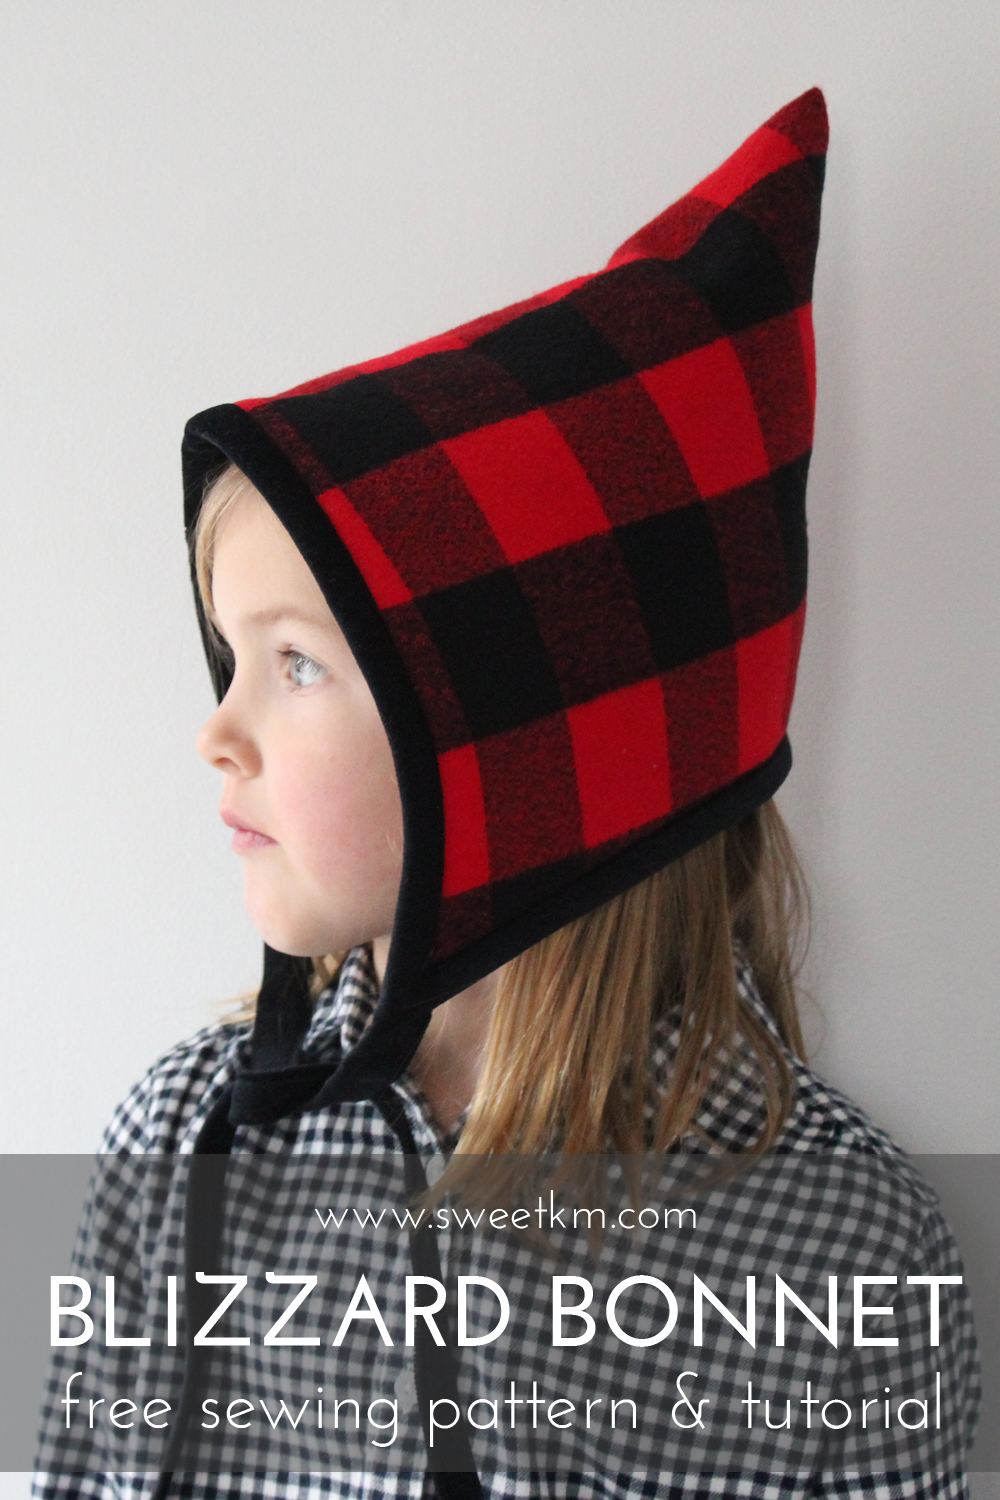 Sweetkm blizzard bonnet free hat sewing pattern in 5 sizes free patterns jeuxipadfo Image collections